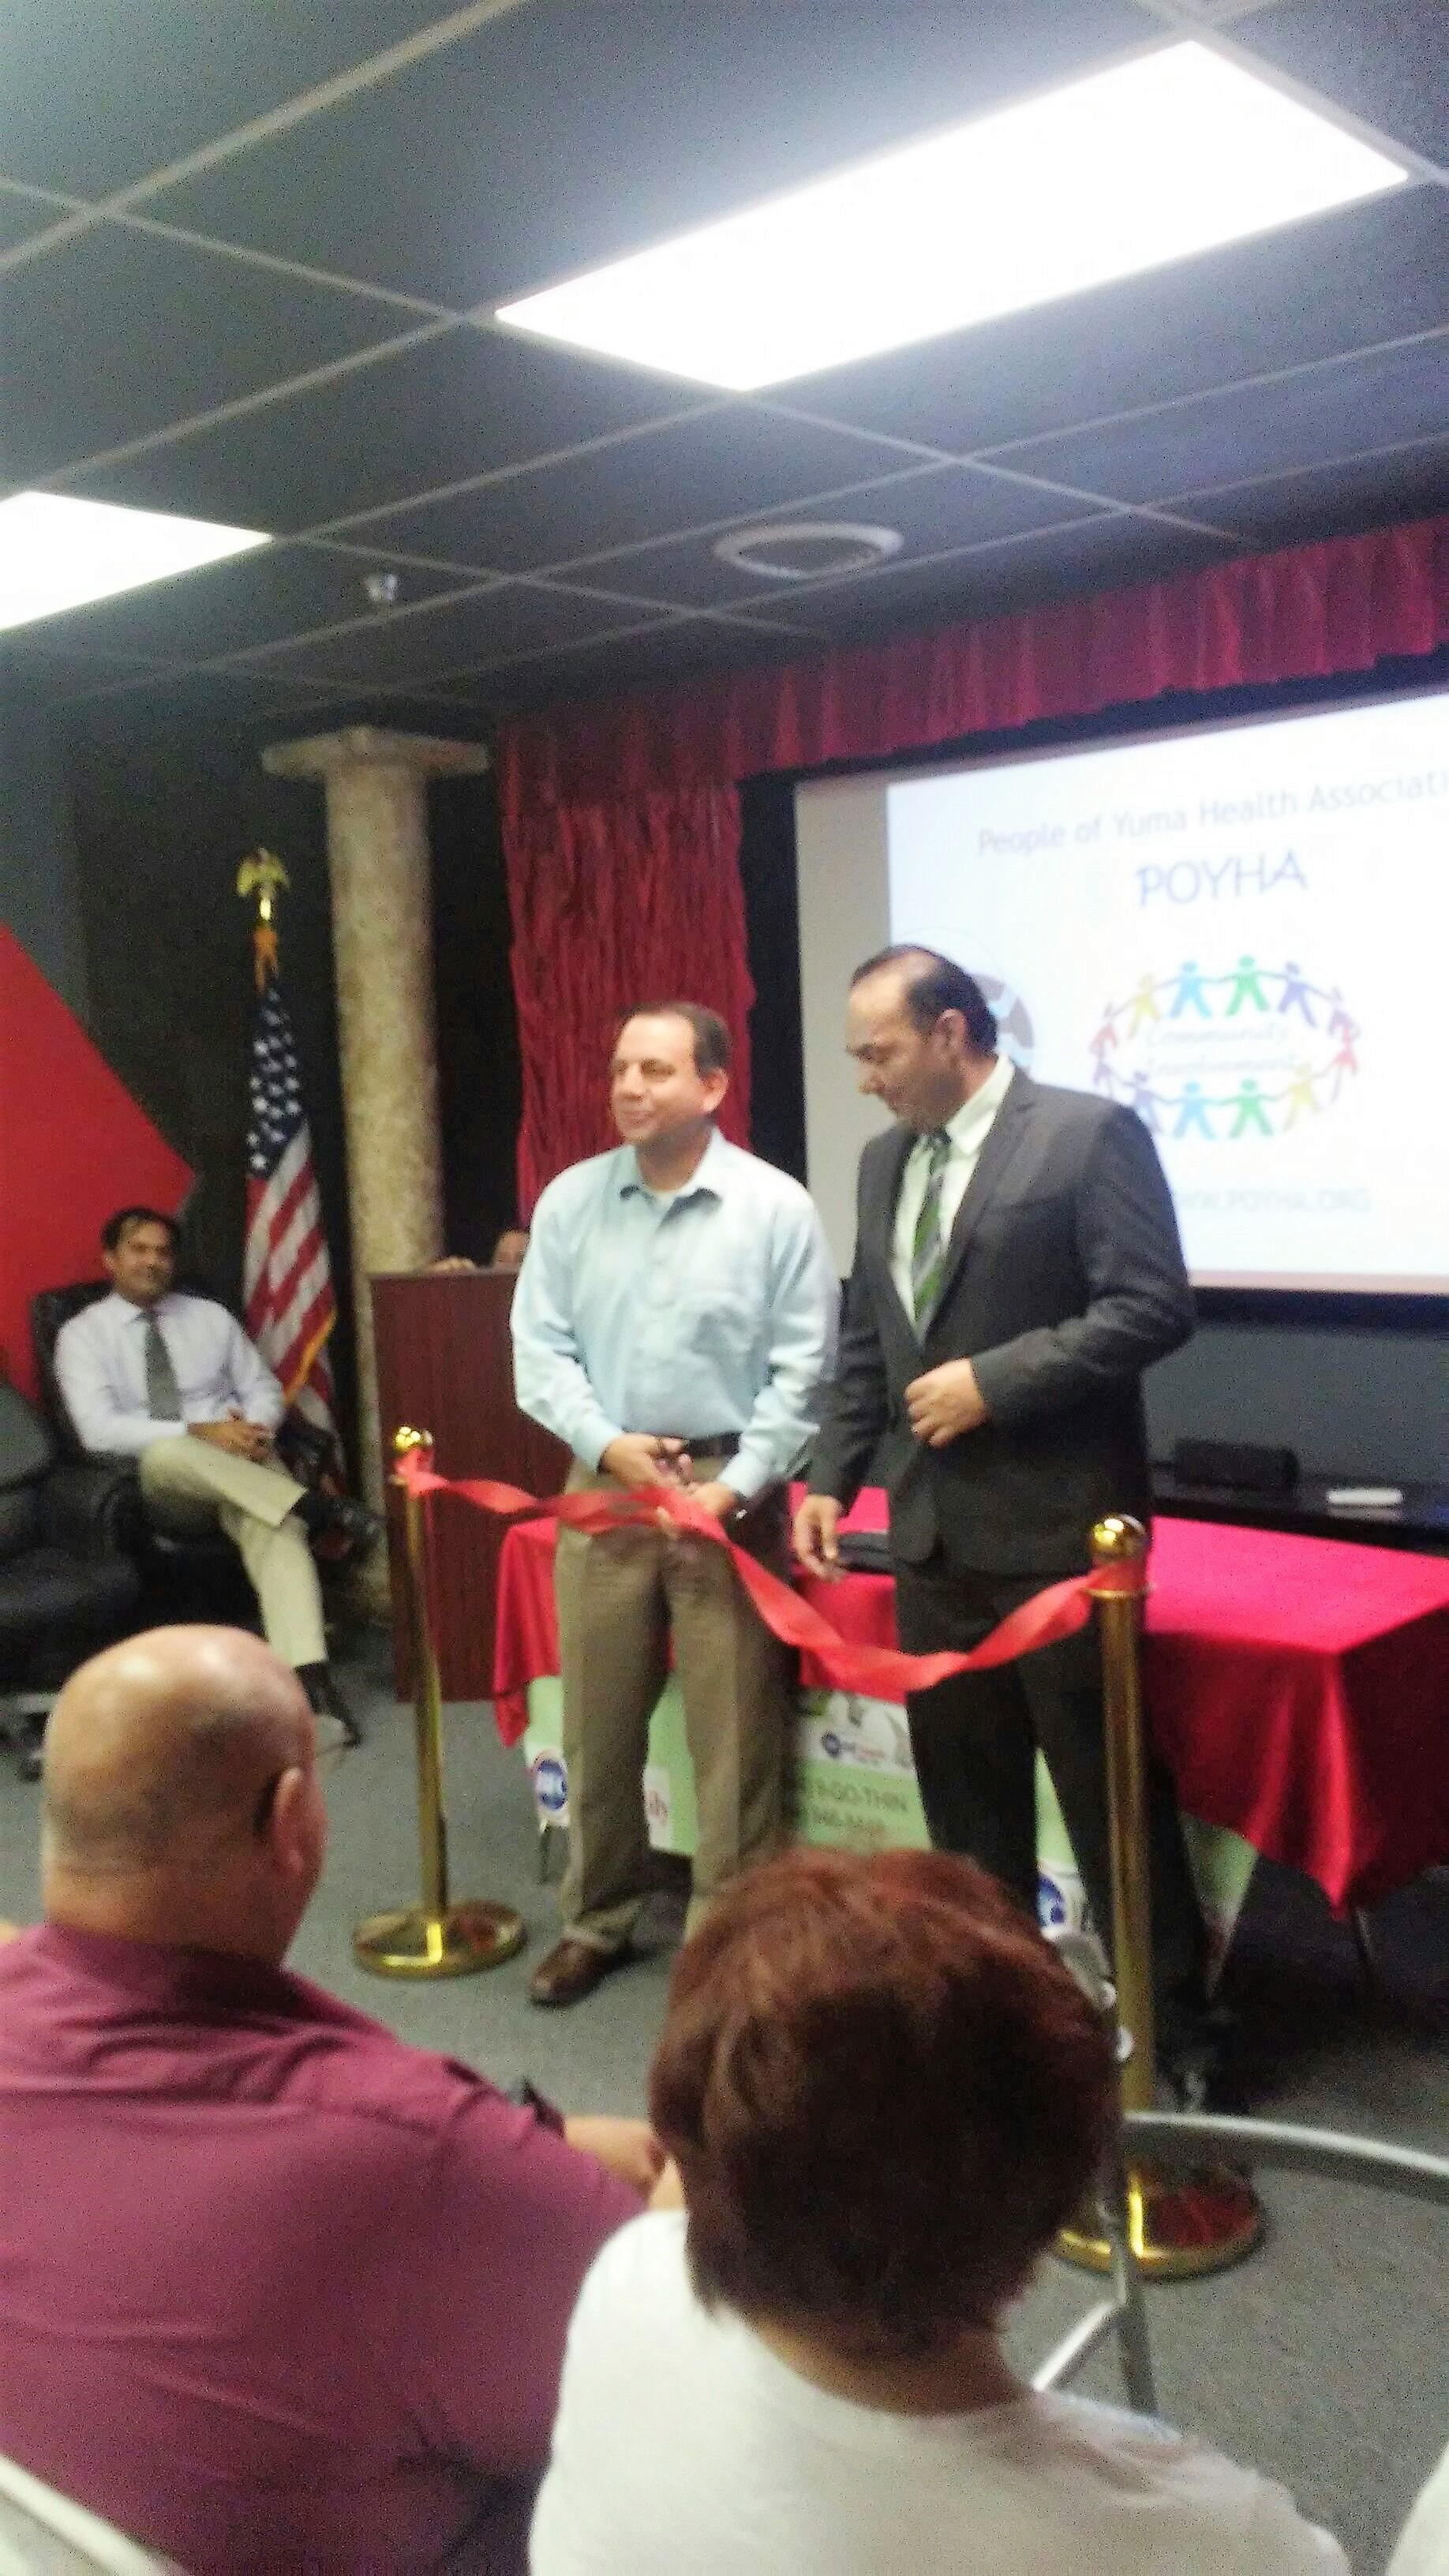 City of Yuma Mayor Douglas J. Nicholls attends POYHA opening ceremony